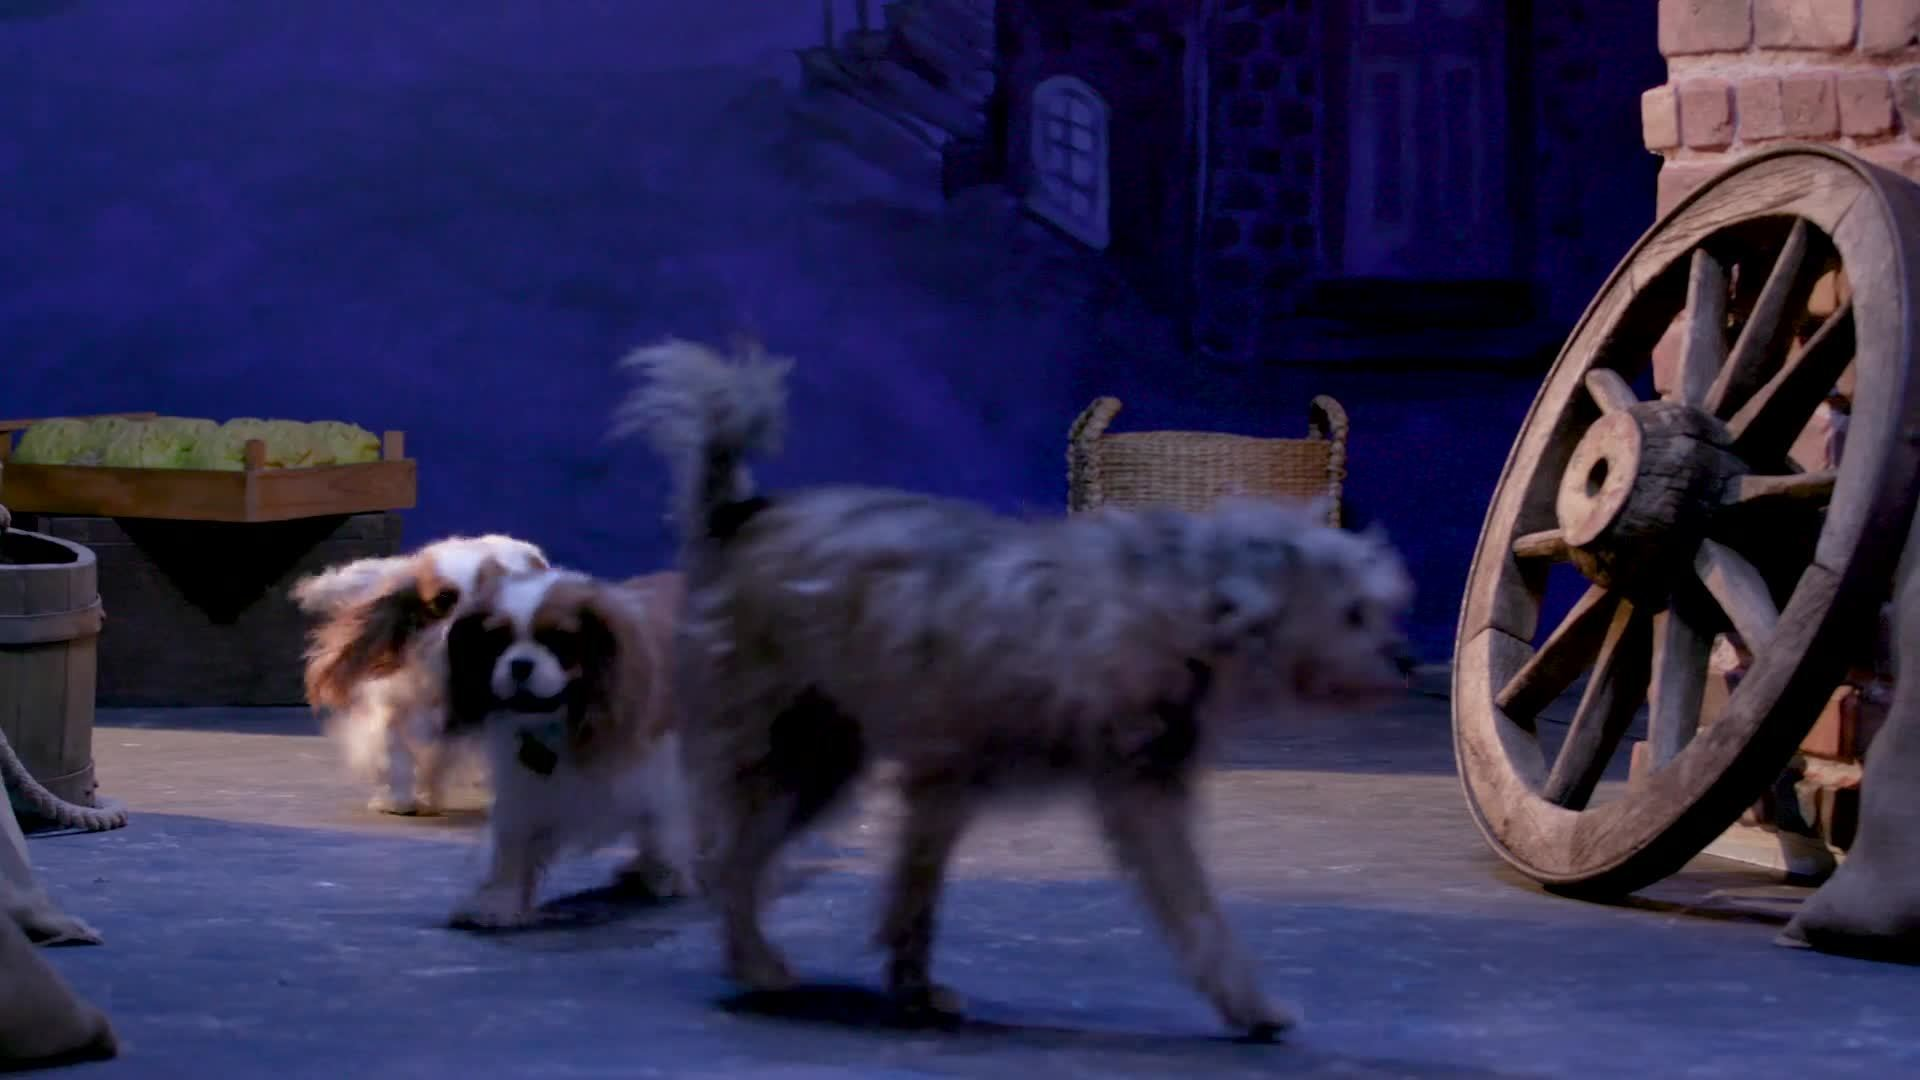 Livestream of Lady and the Tramp Puppies | Oh My Disney